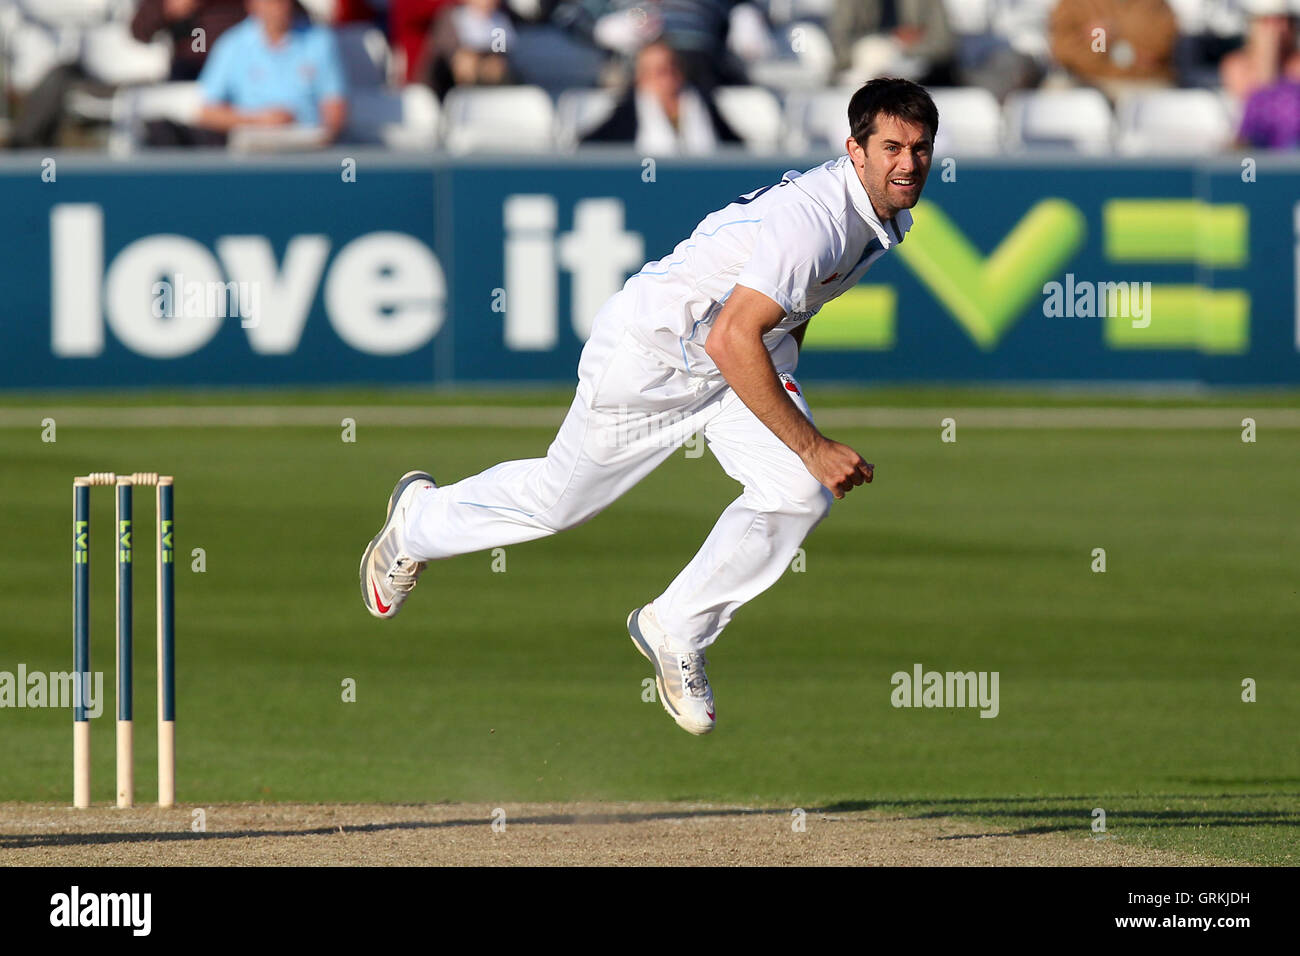 Tim Groenewald of Derbyshire in bowling action - Essex CCC vs Derbyshire CCC - LV County Championship Division Two - Stock Image